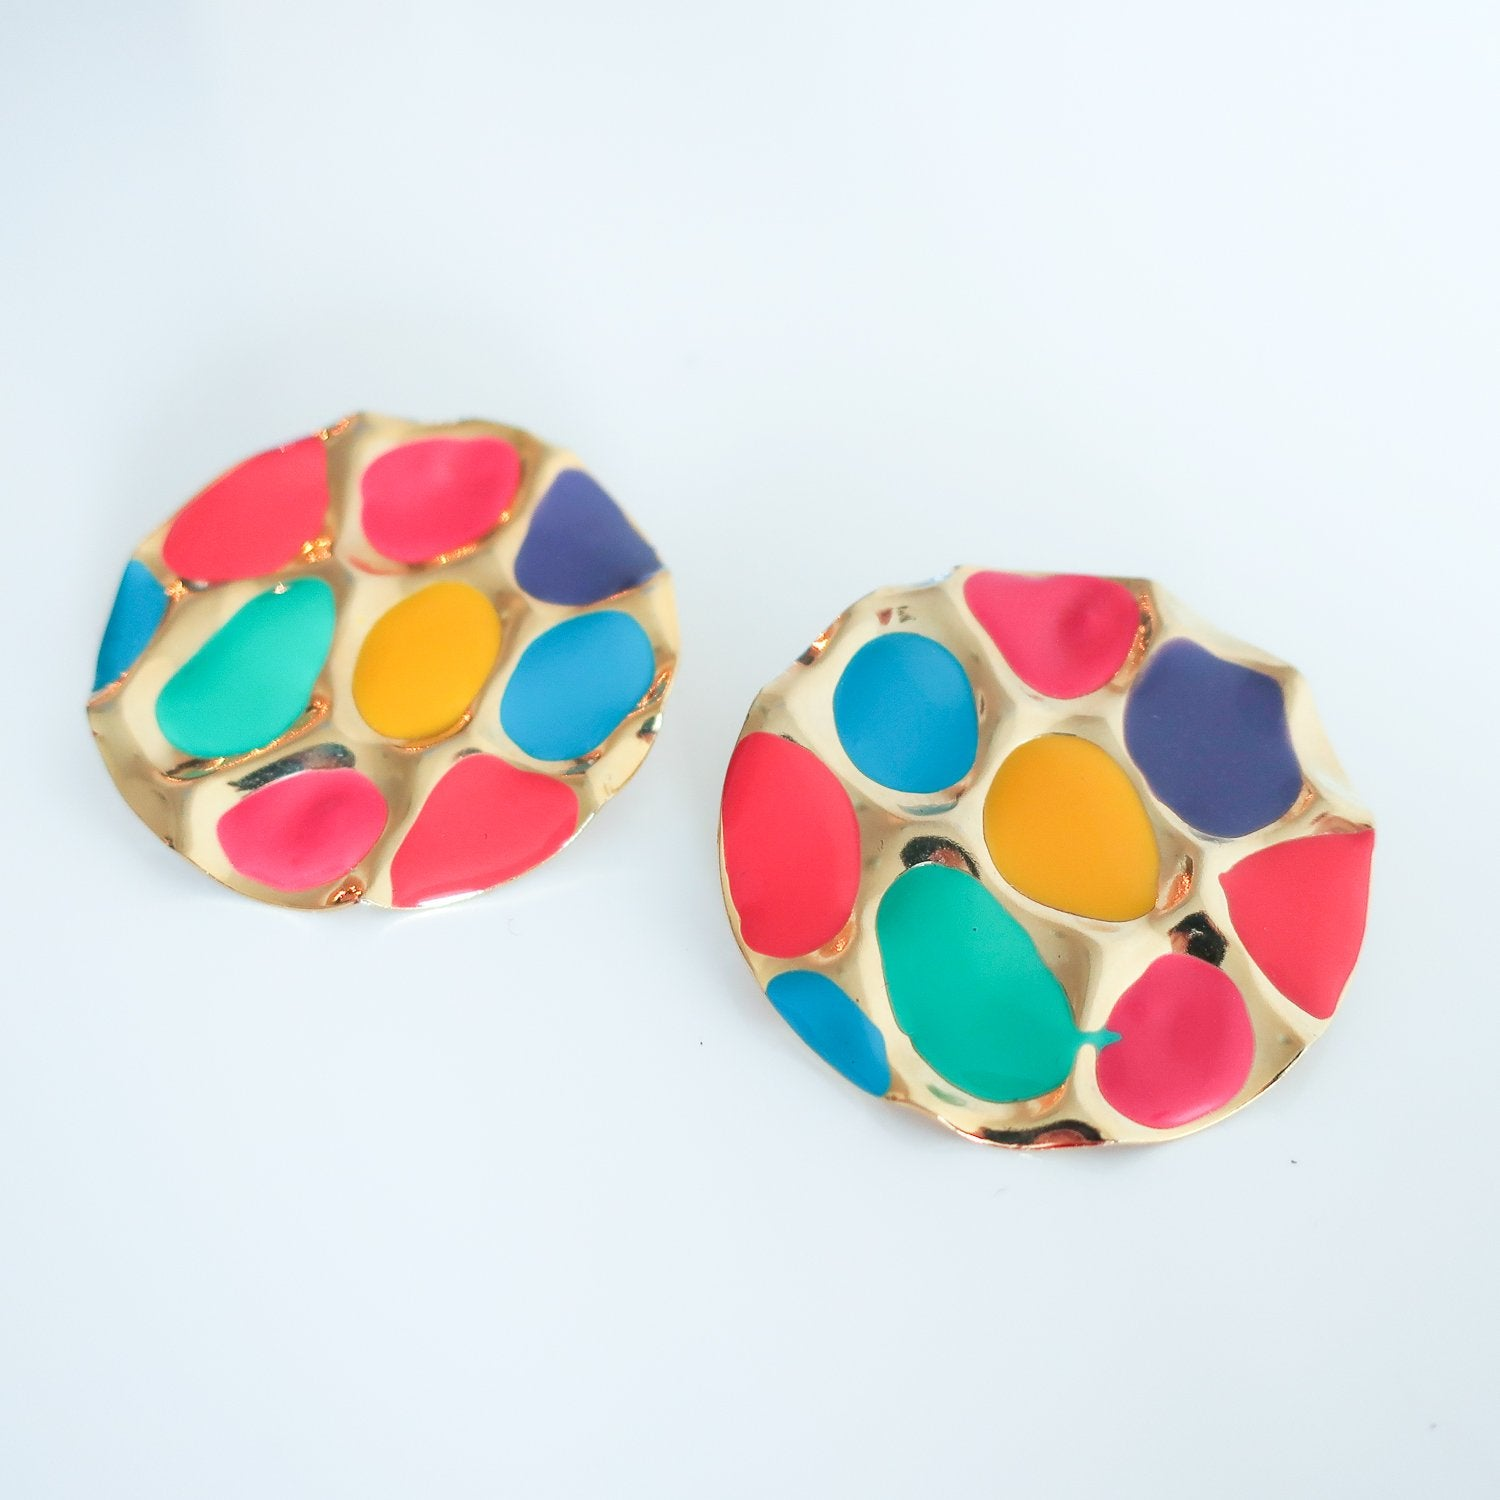 "Second Room Vintage Clothing. Vintage gold tone round pierced studs, with dimpled design, and colourful painted enamel insets in yellow, pink, orange, green, purple and blue. Earrings are 1.5"" wide. Original earring backs have been replaced with new, clear silicone backings. Free North American shipping on all orders."